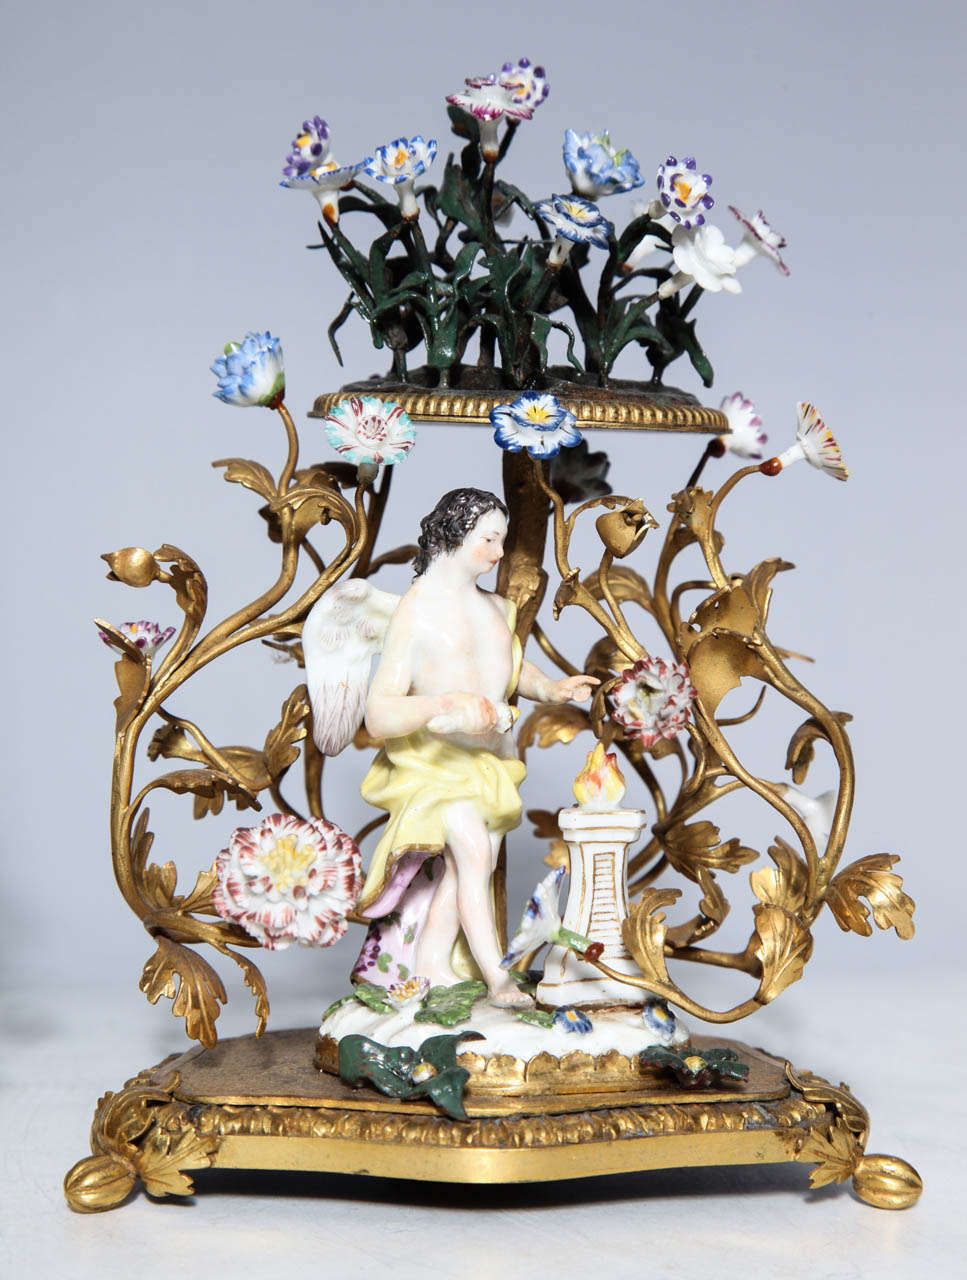 Rococo Revival Pair of 18th Century Meissen Porcelain Groups in Dore Bronze Mounts, circa 1770 For Sale